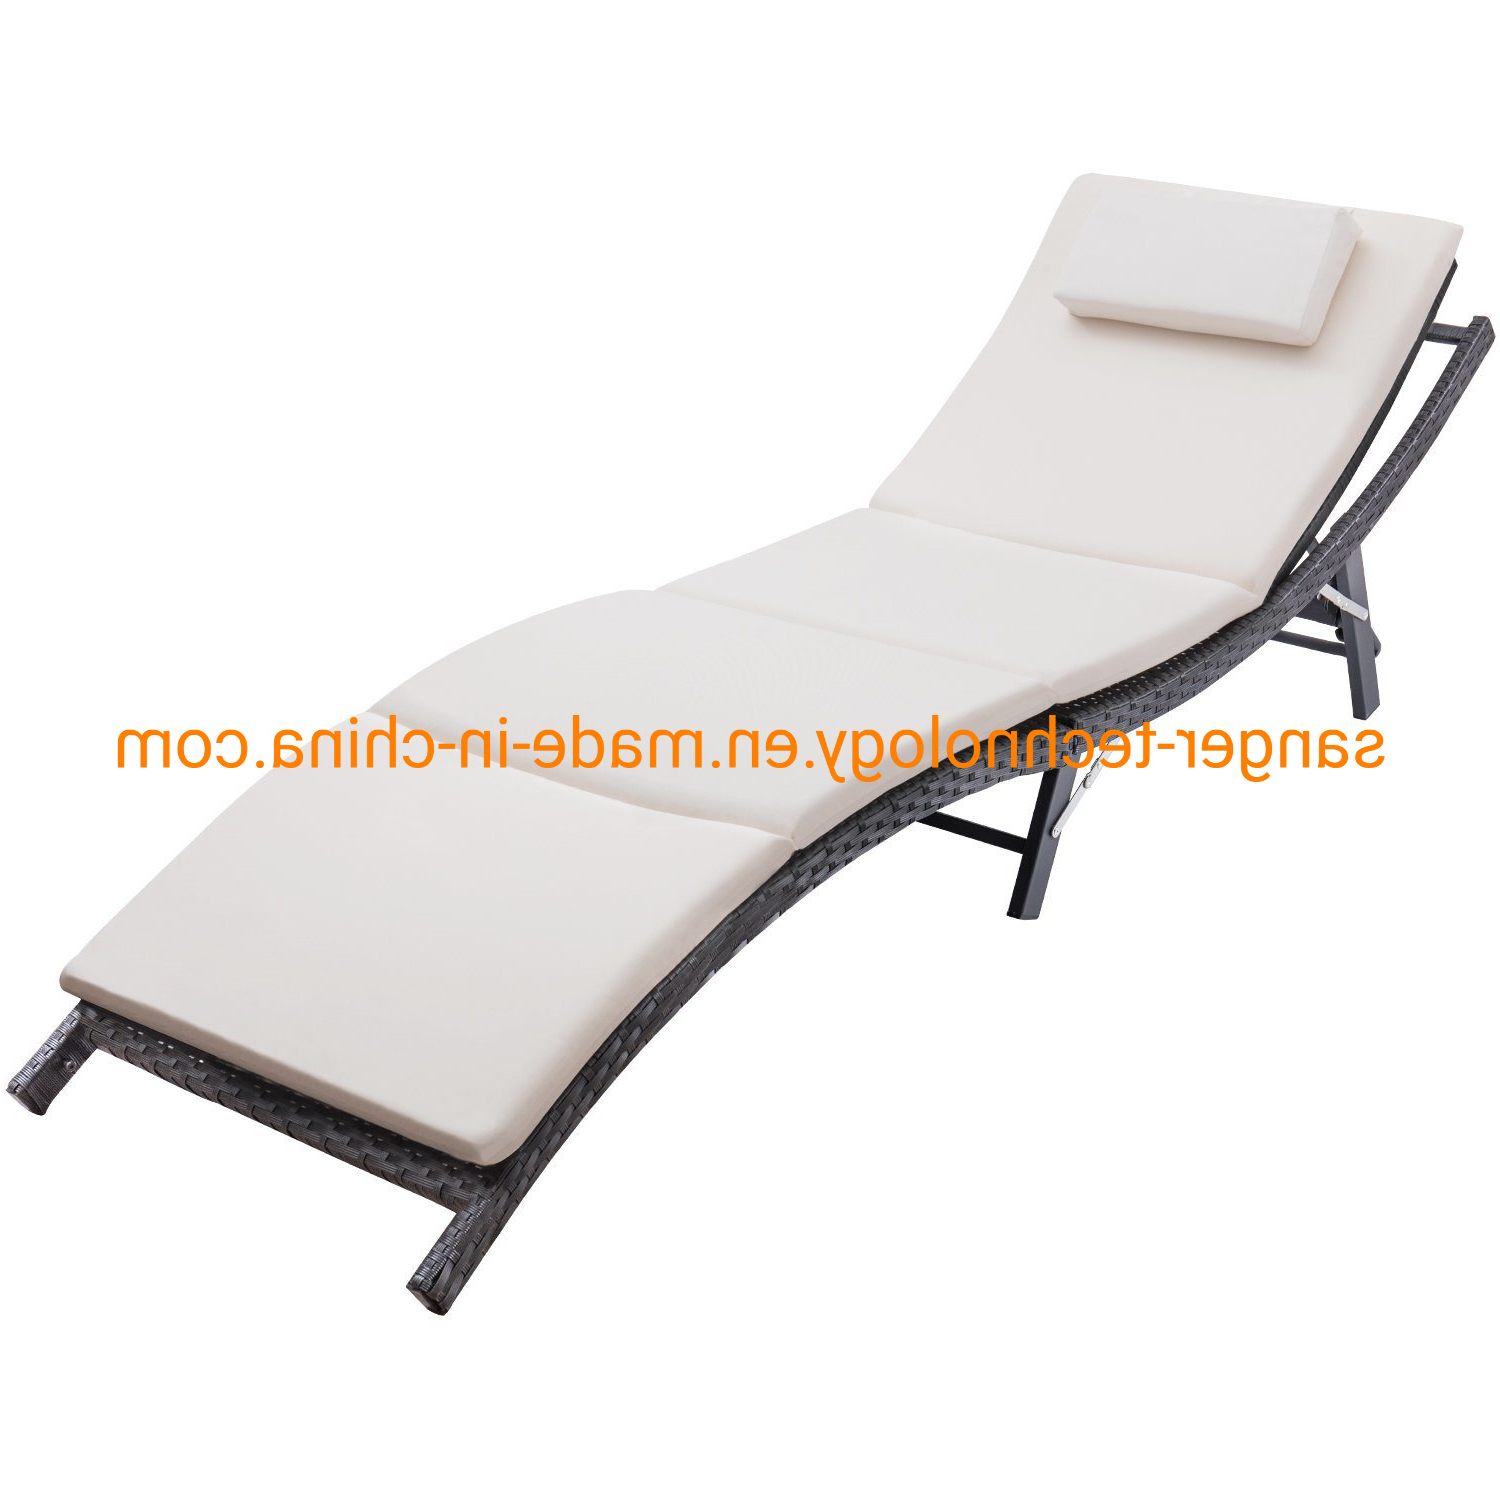 [%[hot Item] Outdoor Patio Chaise Lounge With Cushion Modern Adjustable Pool Lounge Furniture All Weather Pe Wicker Rattan Backrest Patio Lounger For For Current All Weather Single Outdoor Adjustable Loungers|all Weather Single Outdoor Adjustable Loungers Intended For Famous [hot Item] Outdoor Patio Chaise Lounge With Cushion Modern Adjustable Pool Lounge Furniture All Weather Pe Wicker Rattan Backrest Patio Lounger For|2019 All Weather Single Outdoor Adjustable Loungers In [hot Item] Outdoor Patio Chaise Lounge With Cushion Modern Adjustable Pool Lounge Furniture All Weather Pe Wicker Rattan Backrest Patio Lounger For|current [hot Item] Outdoor Patio Chaise Lounge With Cushion Modern Adjustable Pool Lounge Furniture All Weather Pe Wicker Rattan Backrest Patio Lounger For Inside All Weather Single Outdoor Adjustable Loungers%] (View 9 of 25)